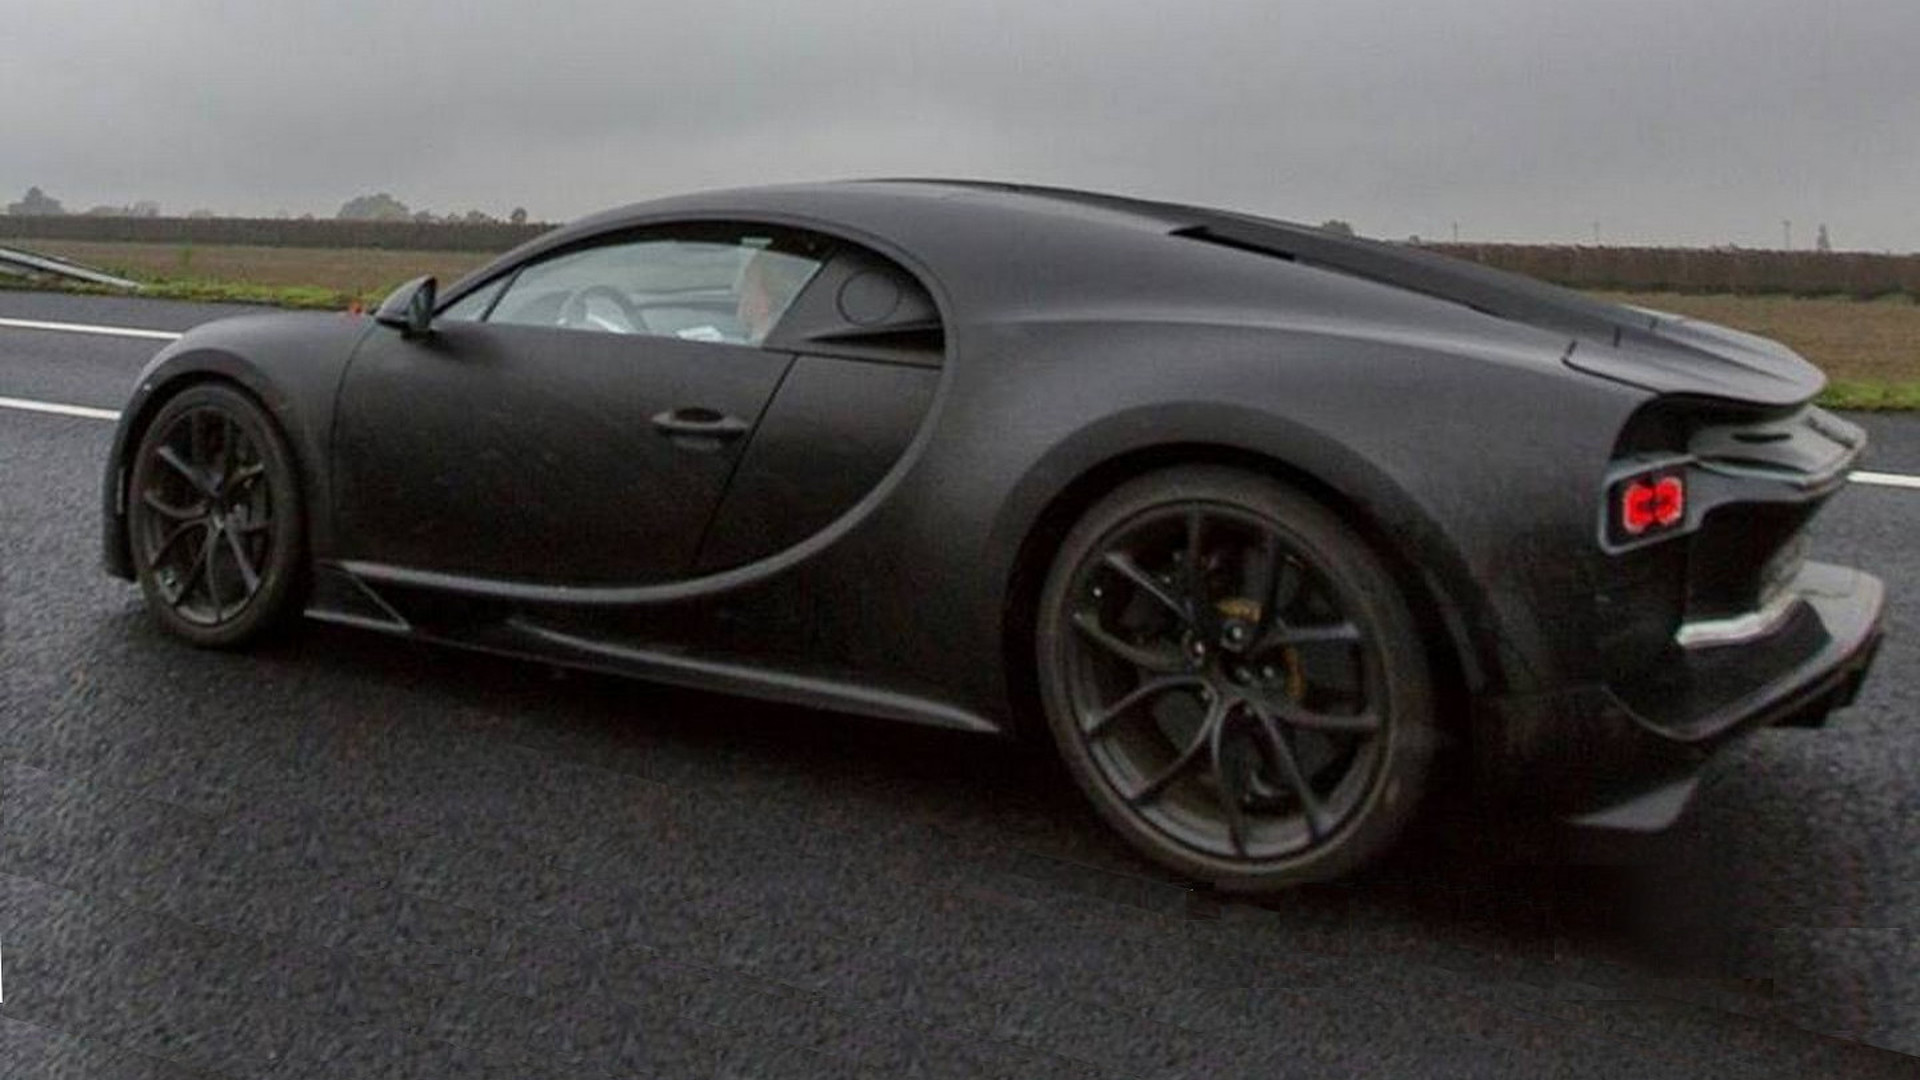 Bugatti says Chiron will be more of everything